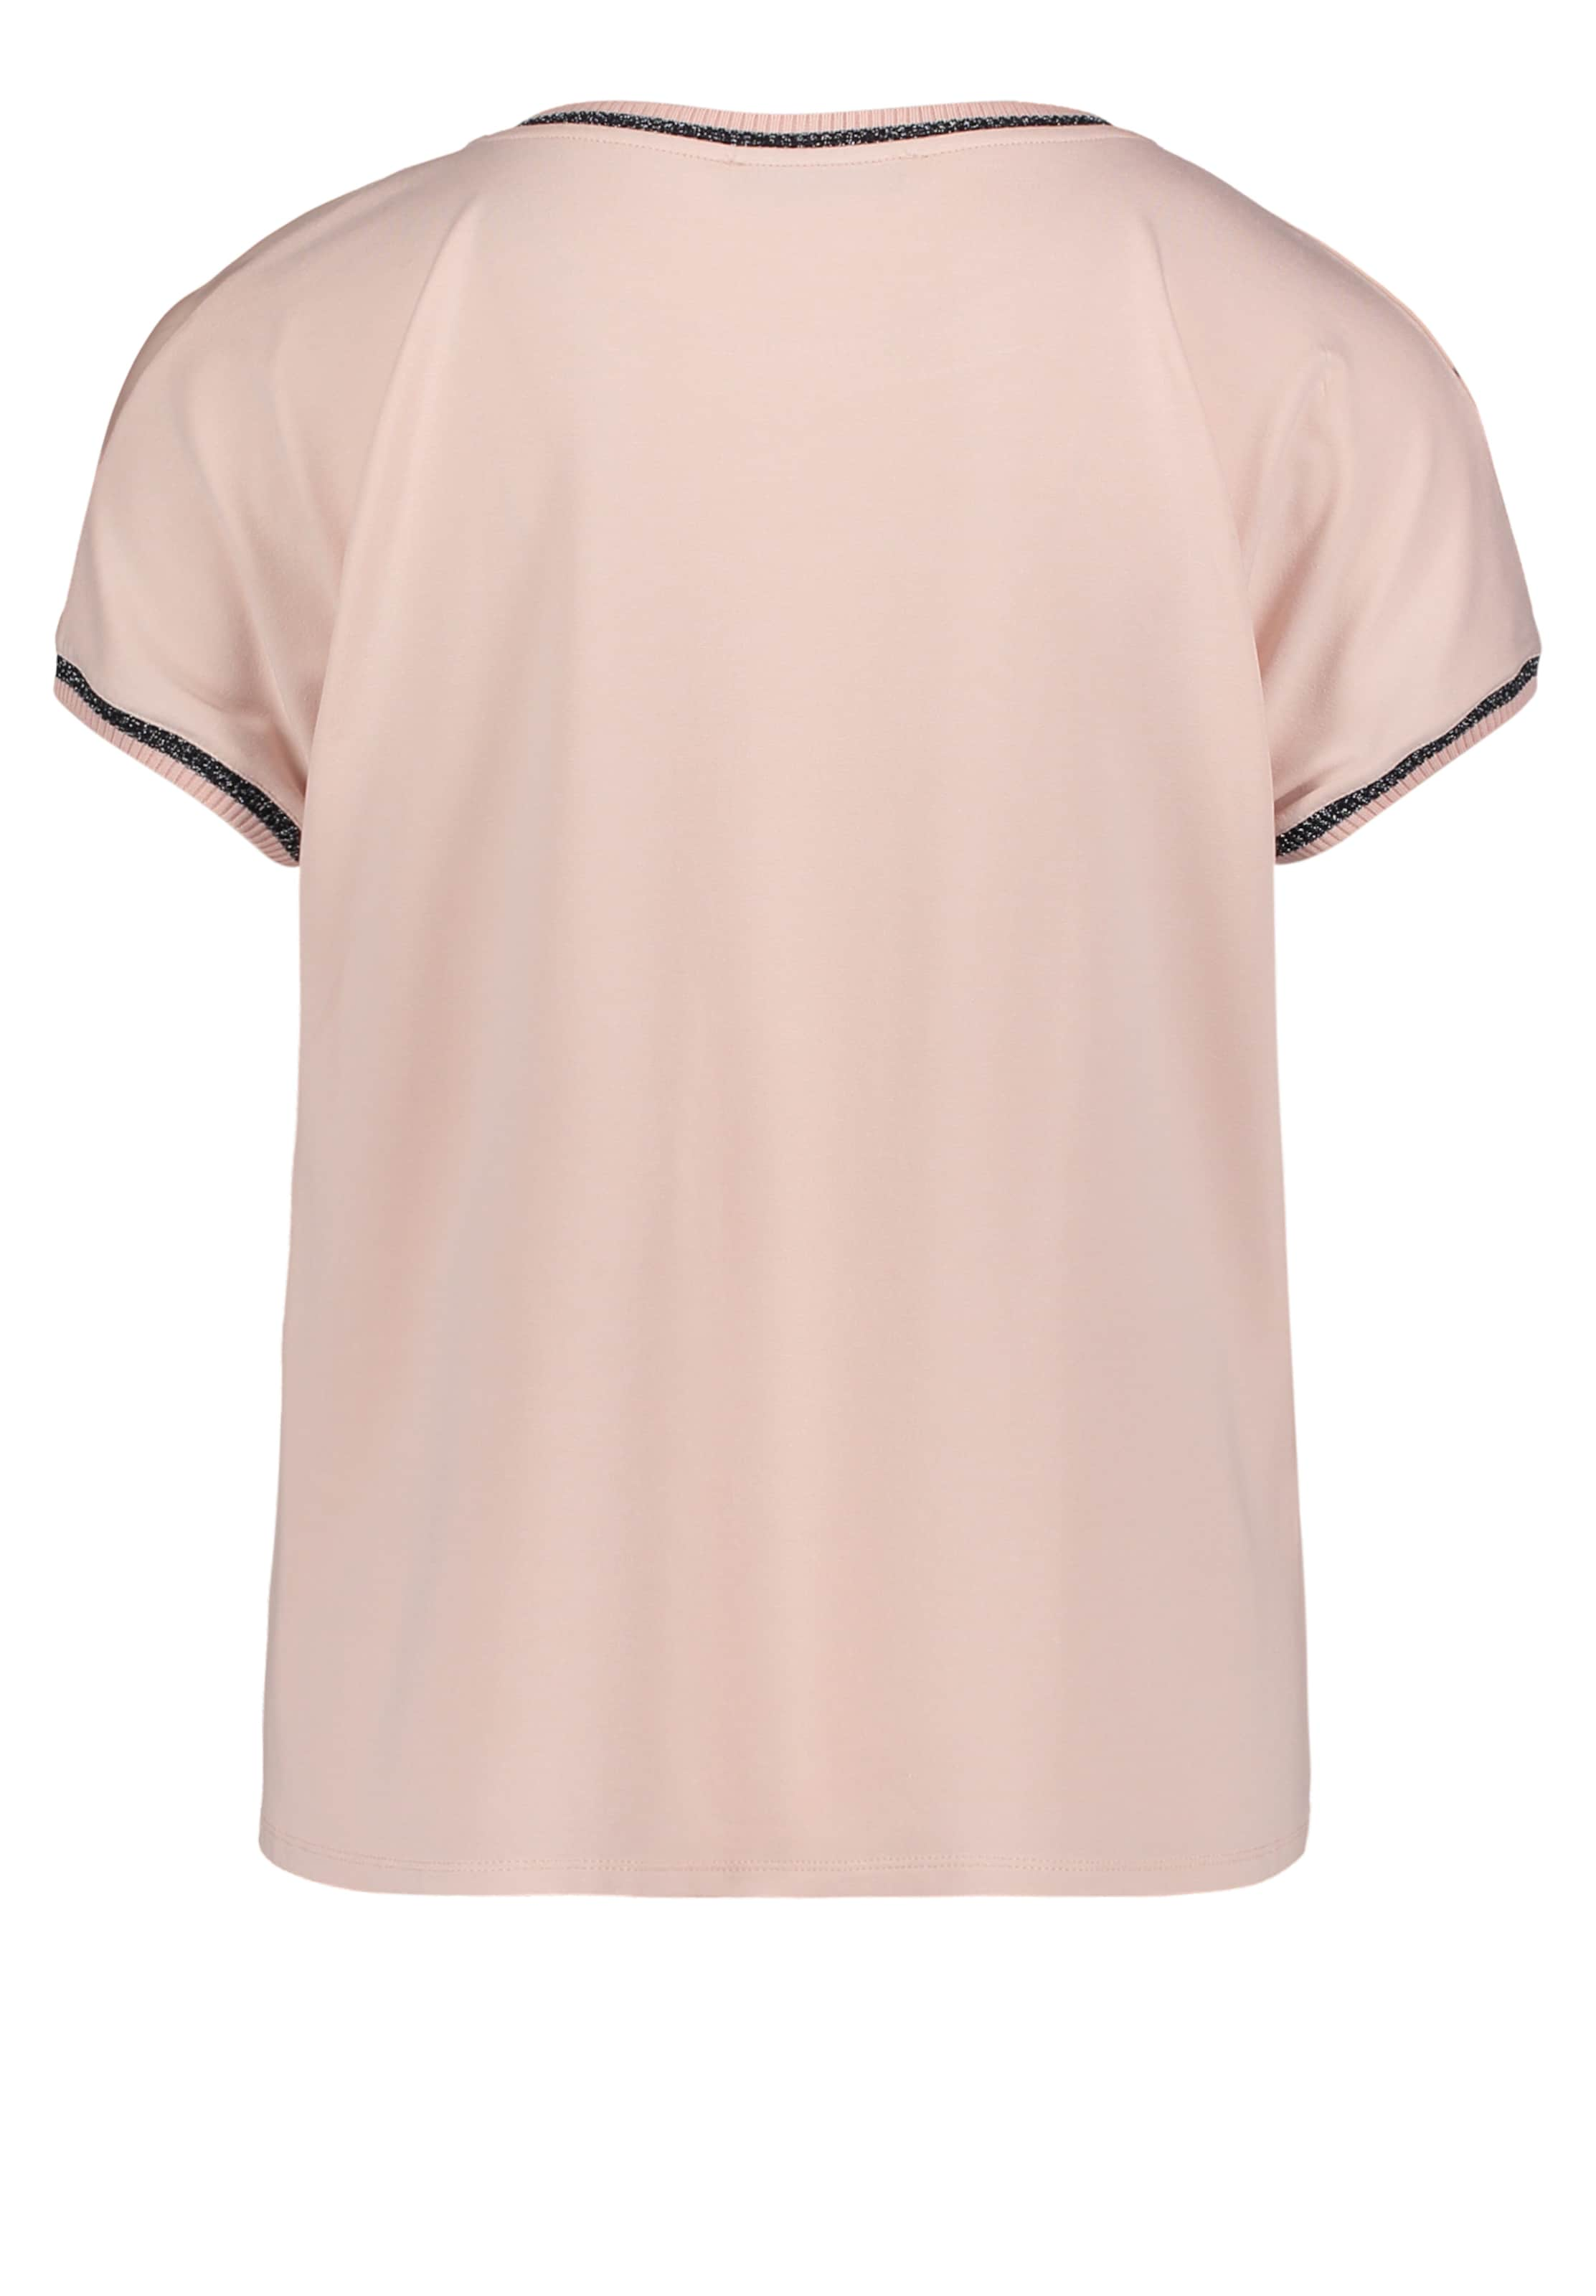 Blusenshirt In Betty Barclay Blusenshirt Barclay EnzianPuder Betty In Betty Blusenshirt EnzianPuder Barclay In 8wX0PnOk